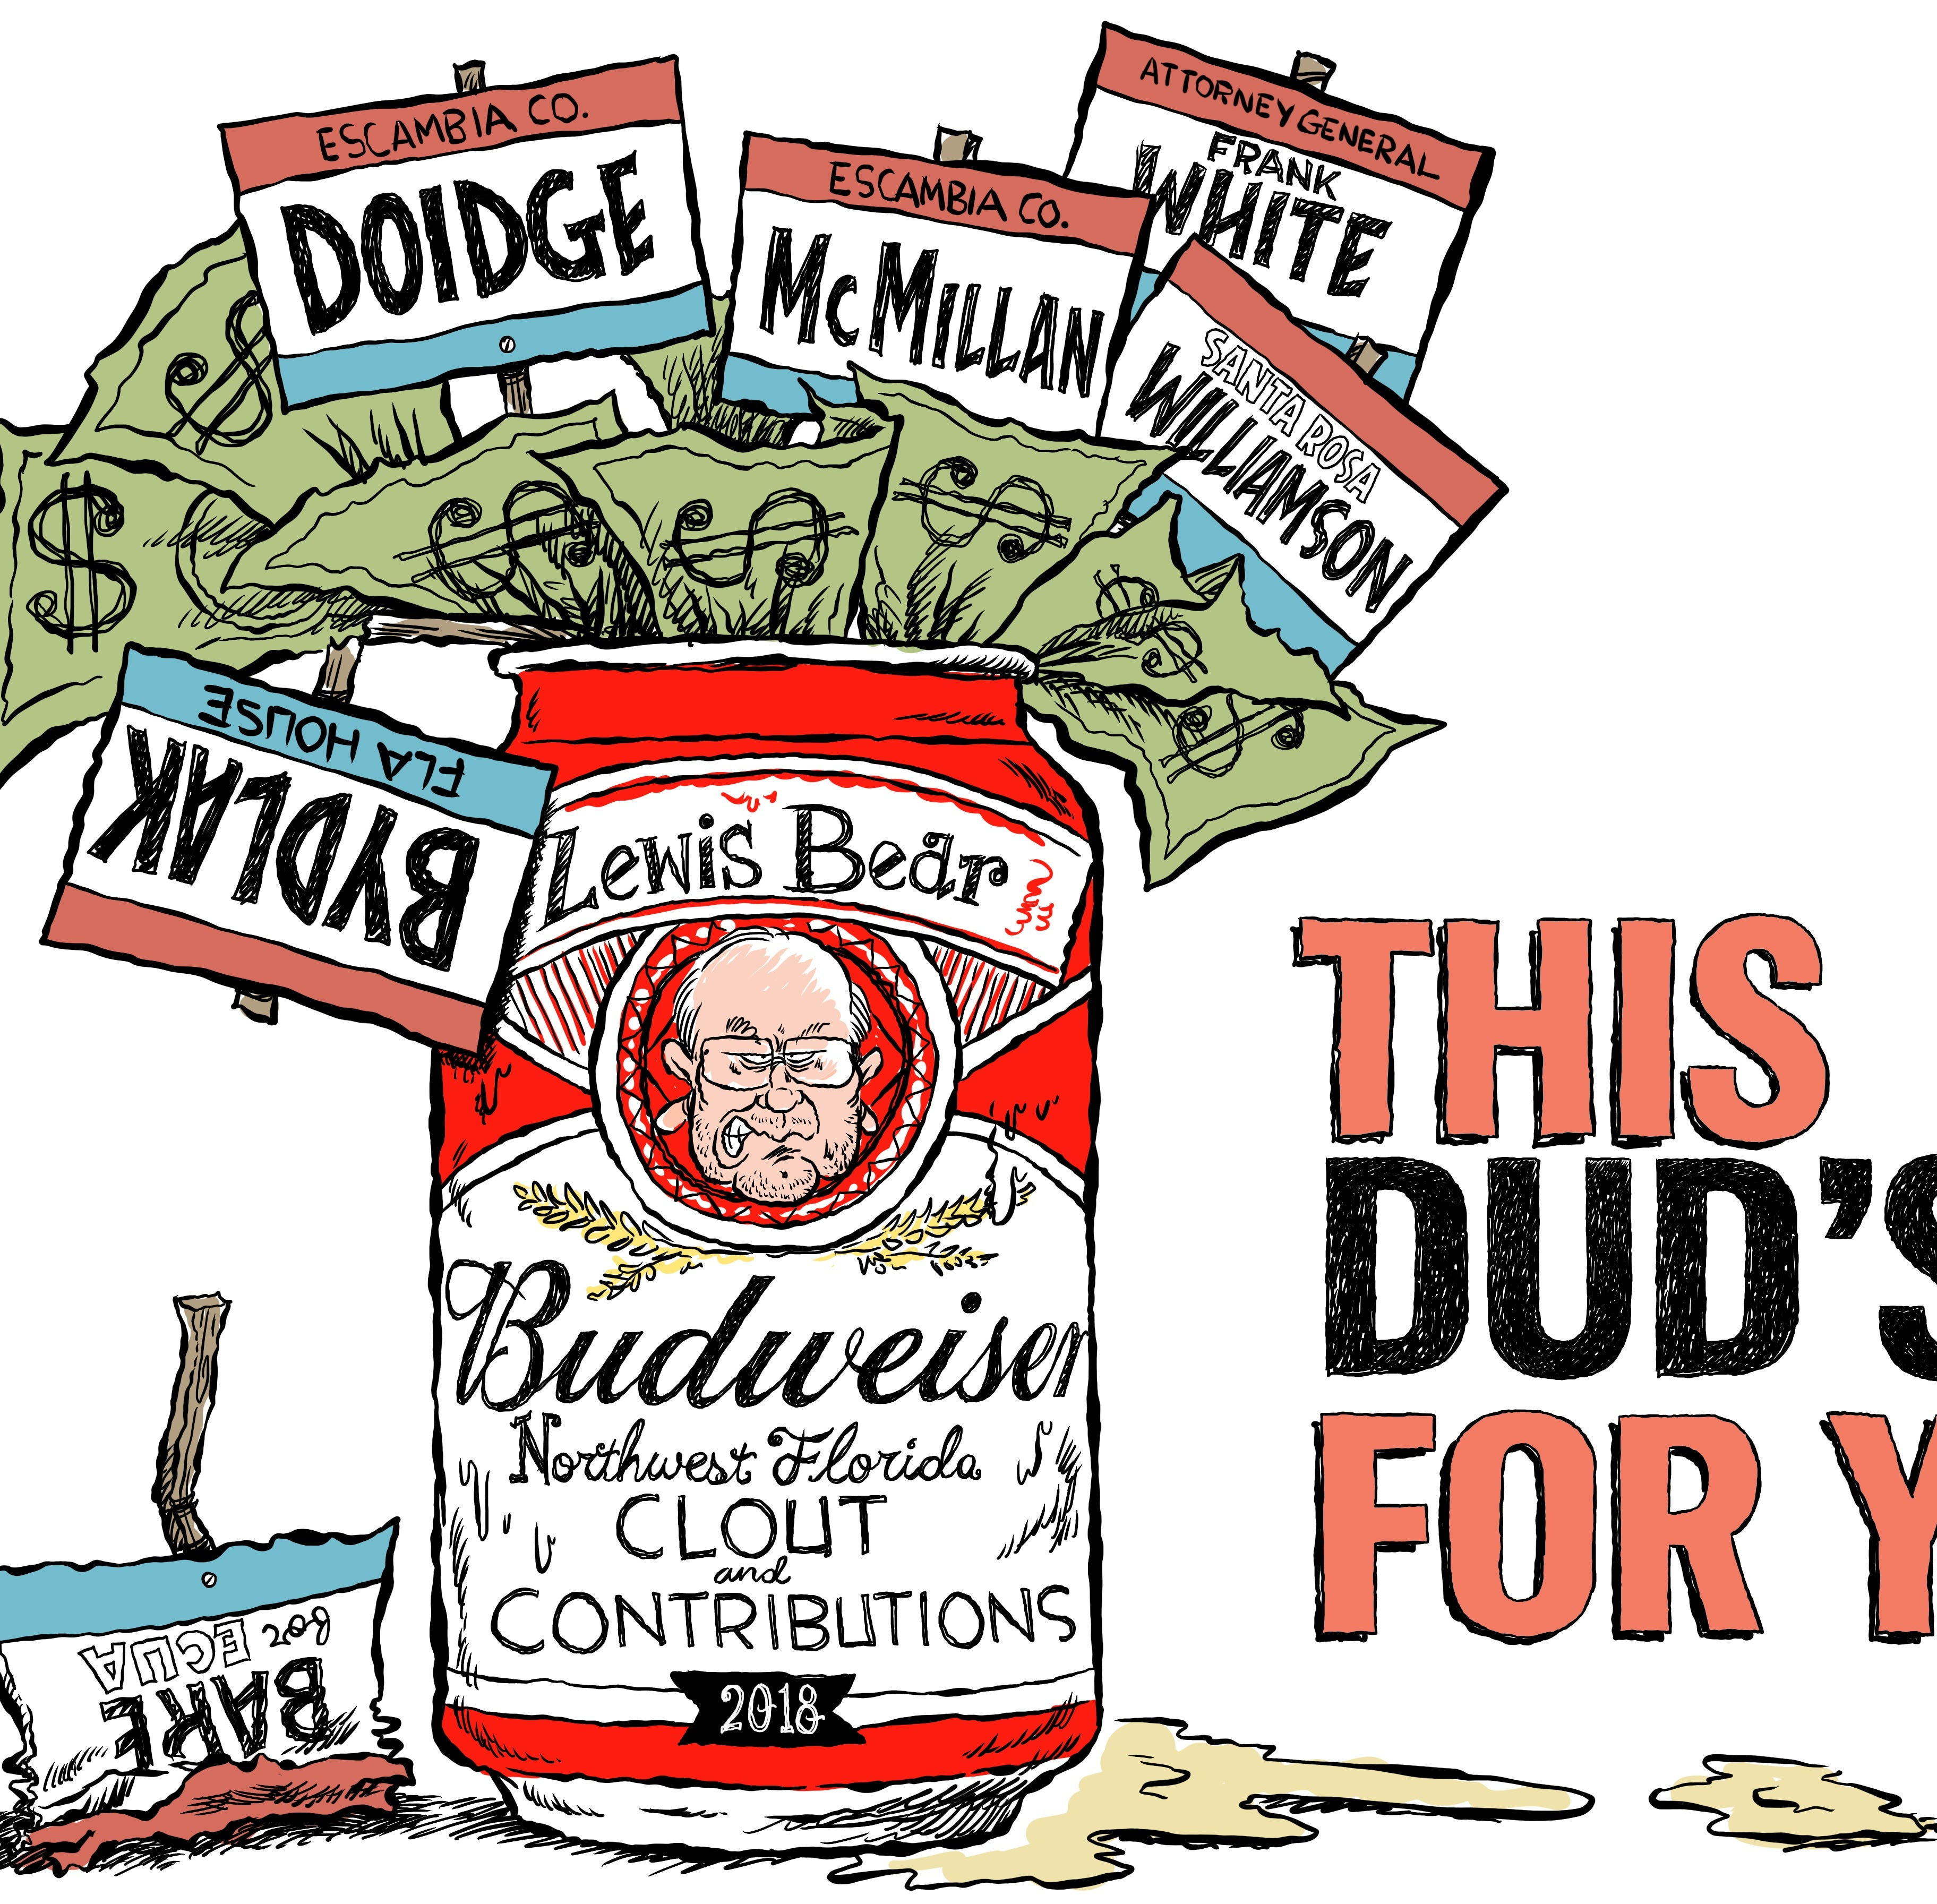 Don't pay for politics. Beer is better | Andy Marlette